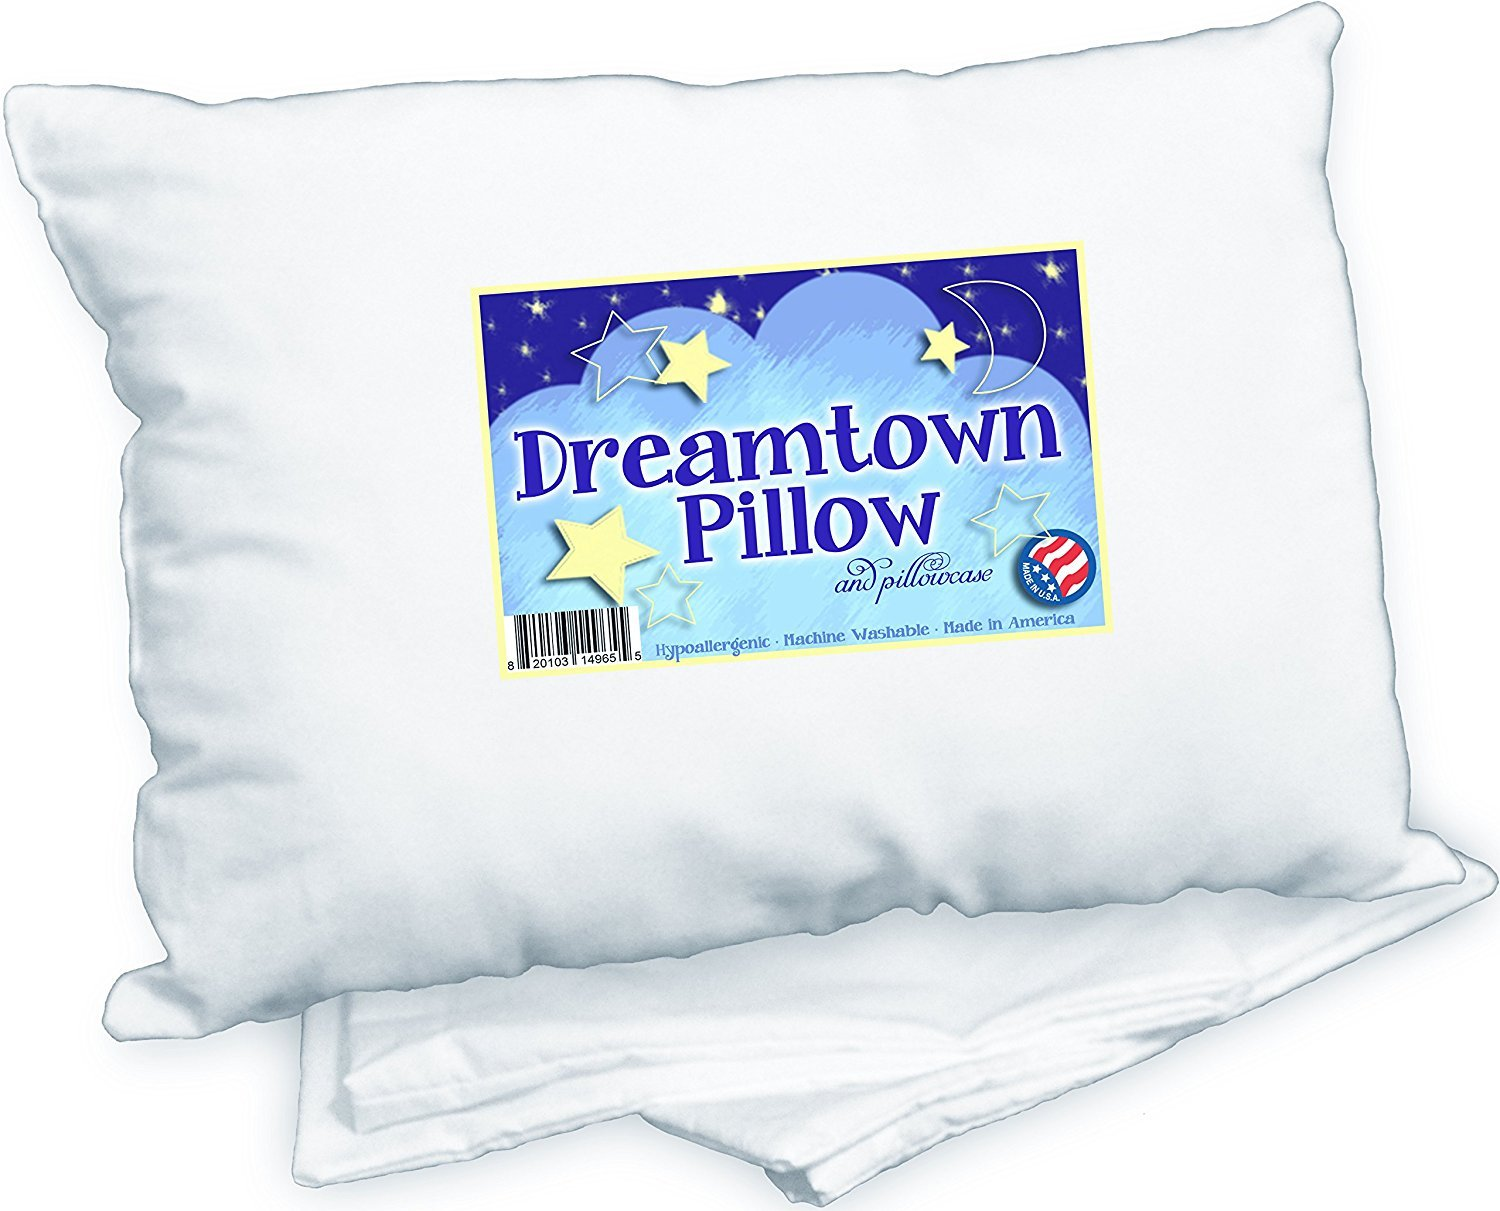 Toddler Pillow by Dreamtown Kids WITH PILLOWCASE For Kids Or Travel- Hypoallergenic (Ages 2-5) Chiropractor recommended for perfect neck safety. 14x19 inches with medium fluff makes the best size & thickness for sleeping in bed, crib, floor, carseat &a